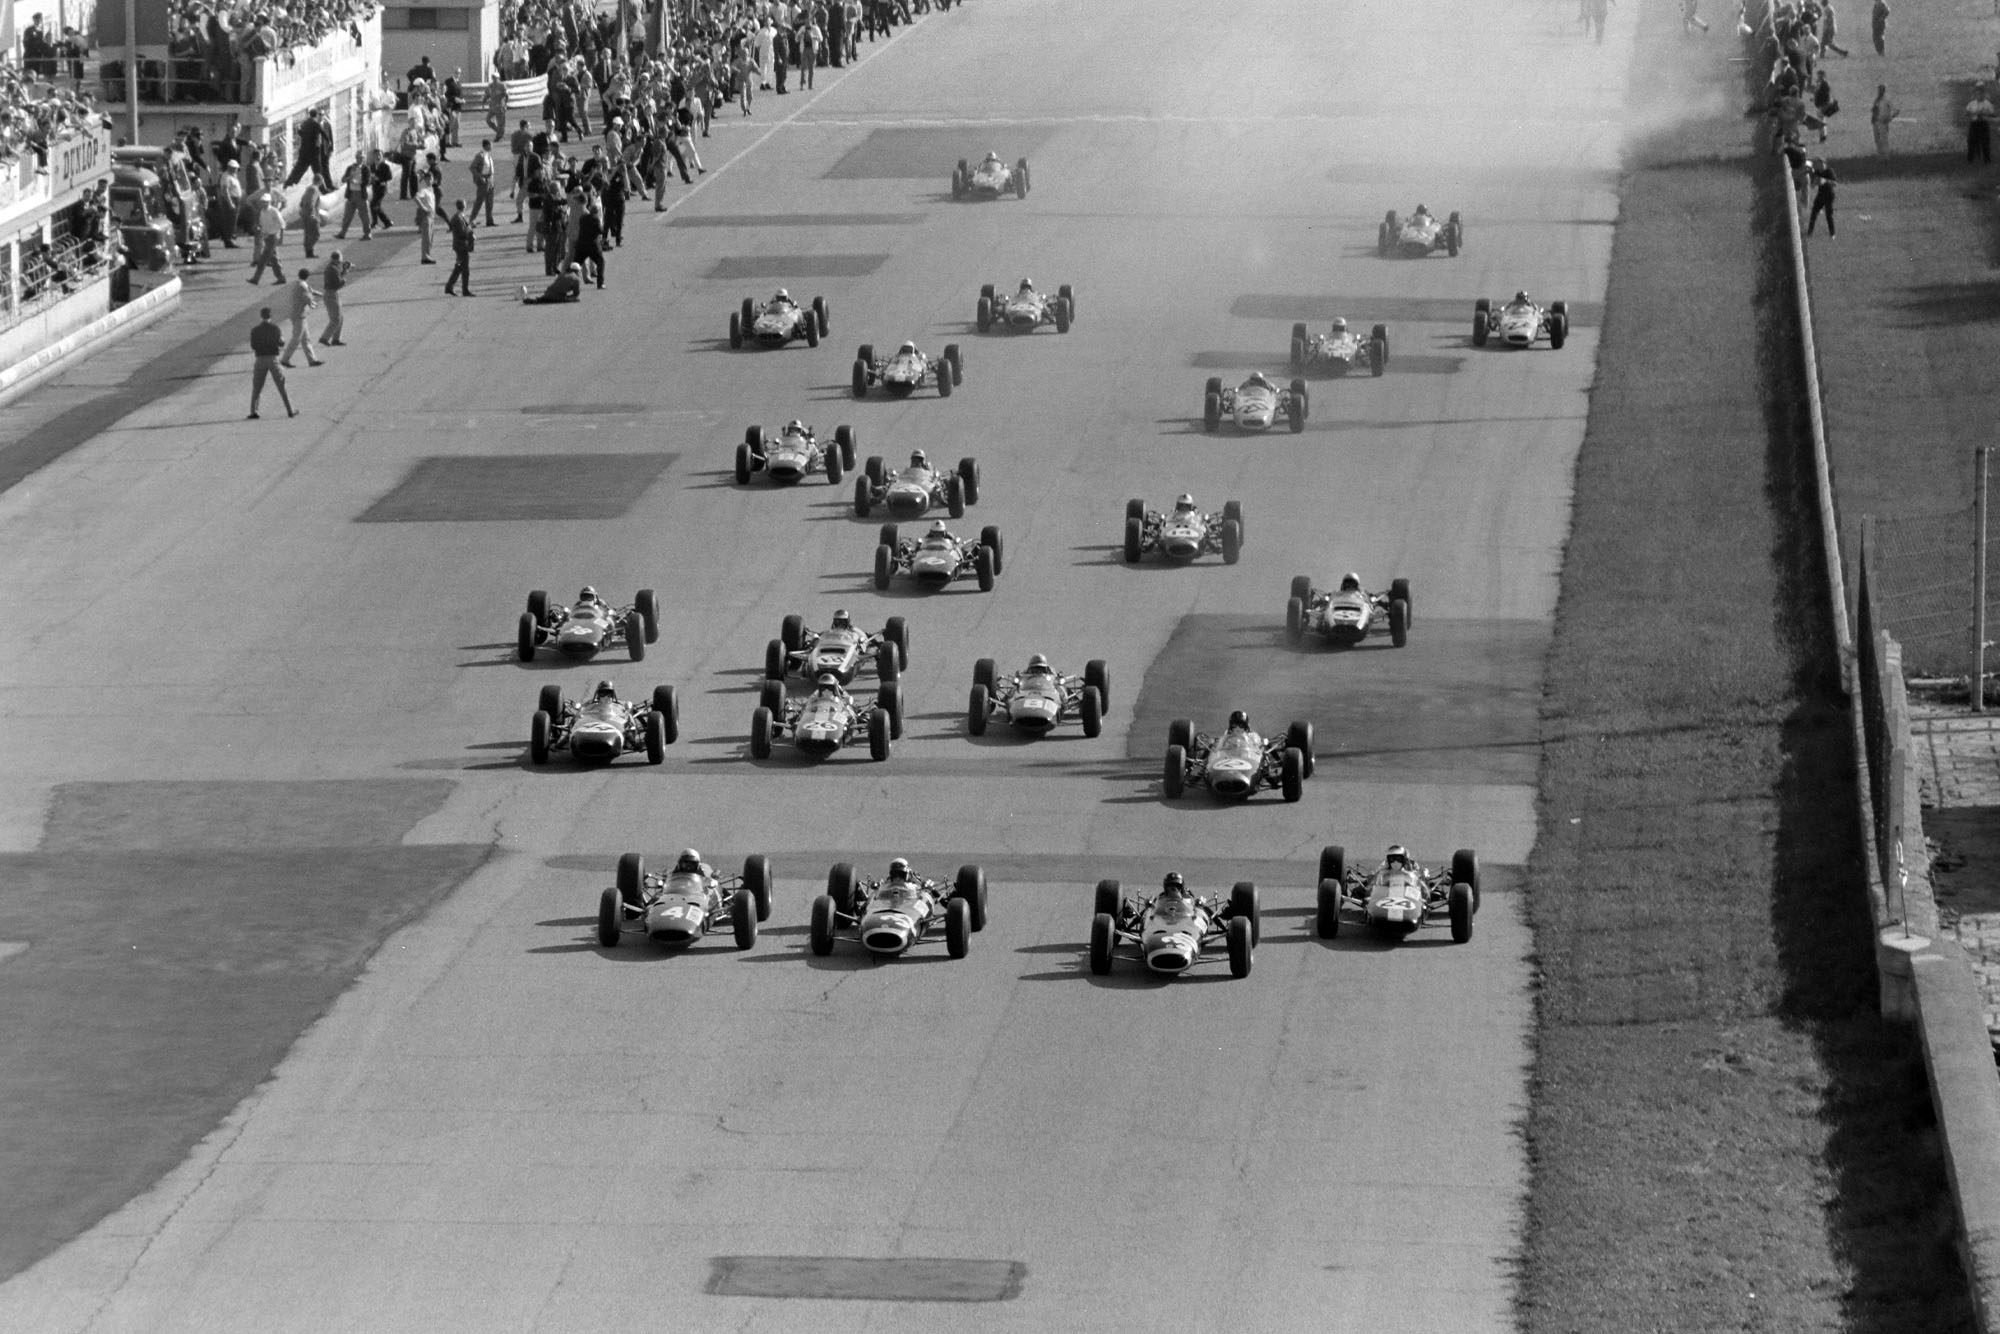 The start of the race. Lorenzo Bandini, Ferrari 1512, battles with Jackie Stewart, BRM P261, Graham Hill, BRM P261, and Jim Clark, Lotus 33 Climax, heading towards the first turn.